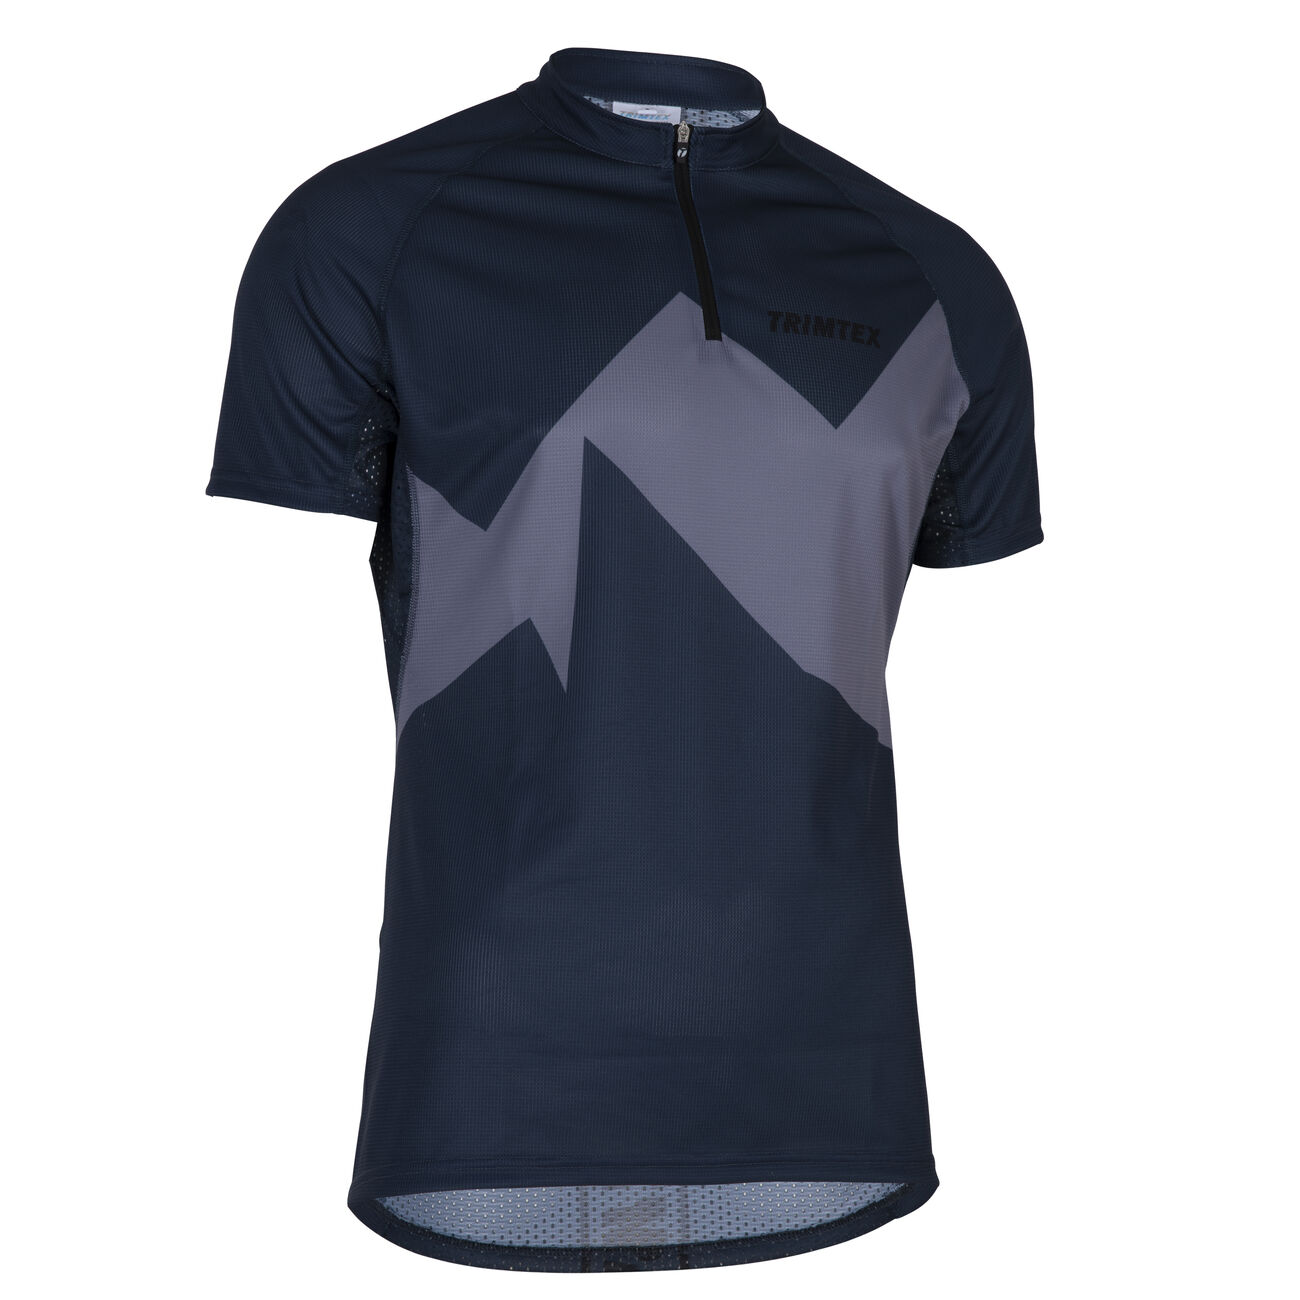 Rapid 2.0 o-shirt men's